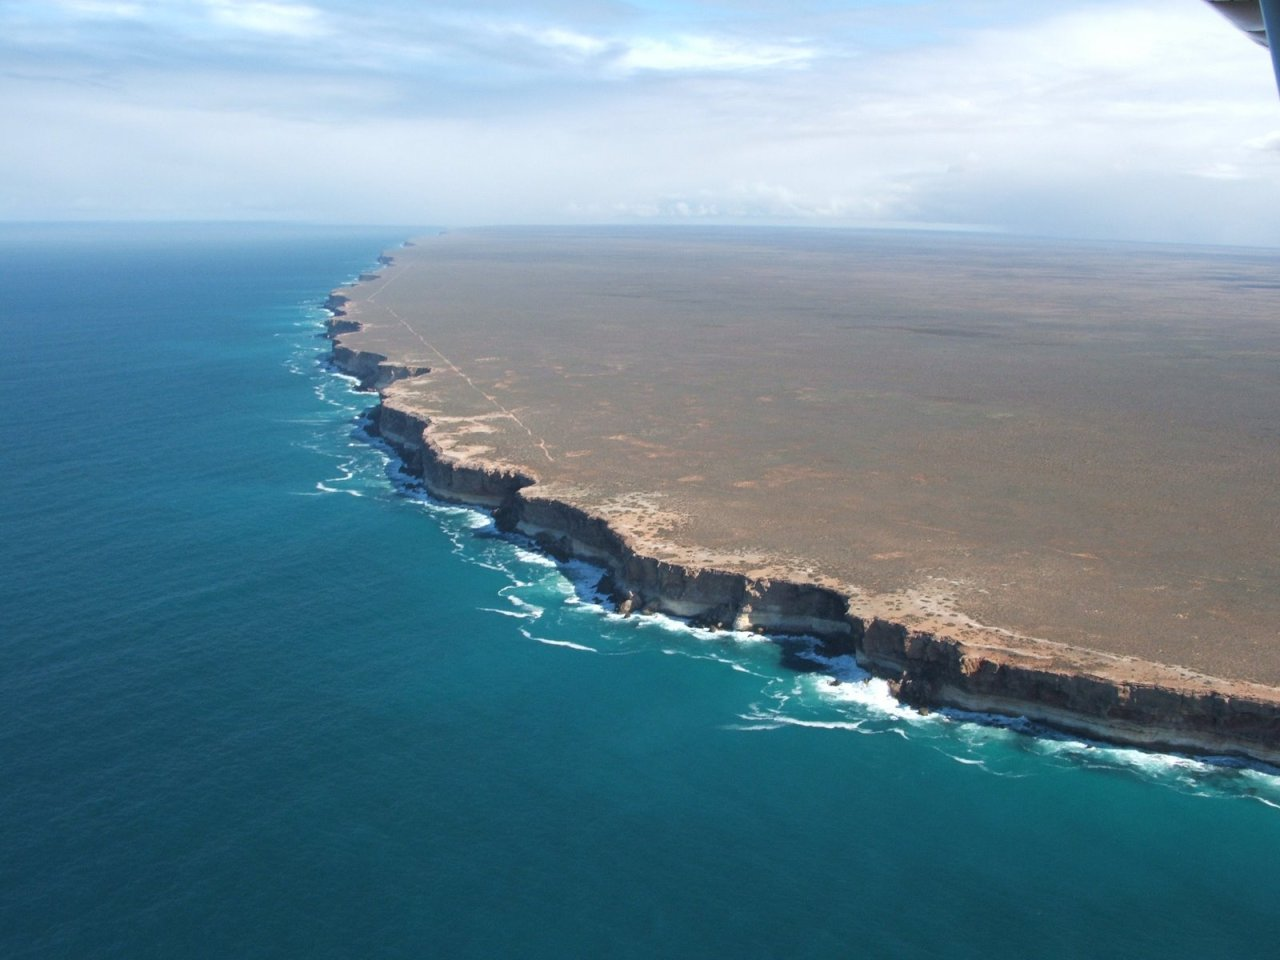 ausonia:  The end of the world - Australia